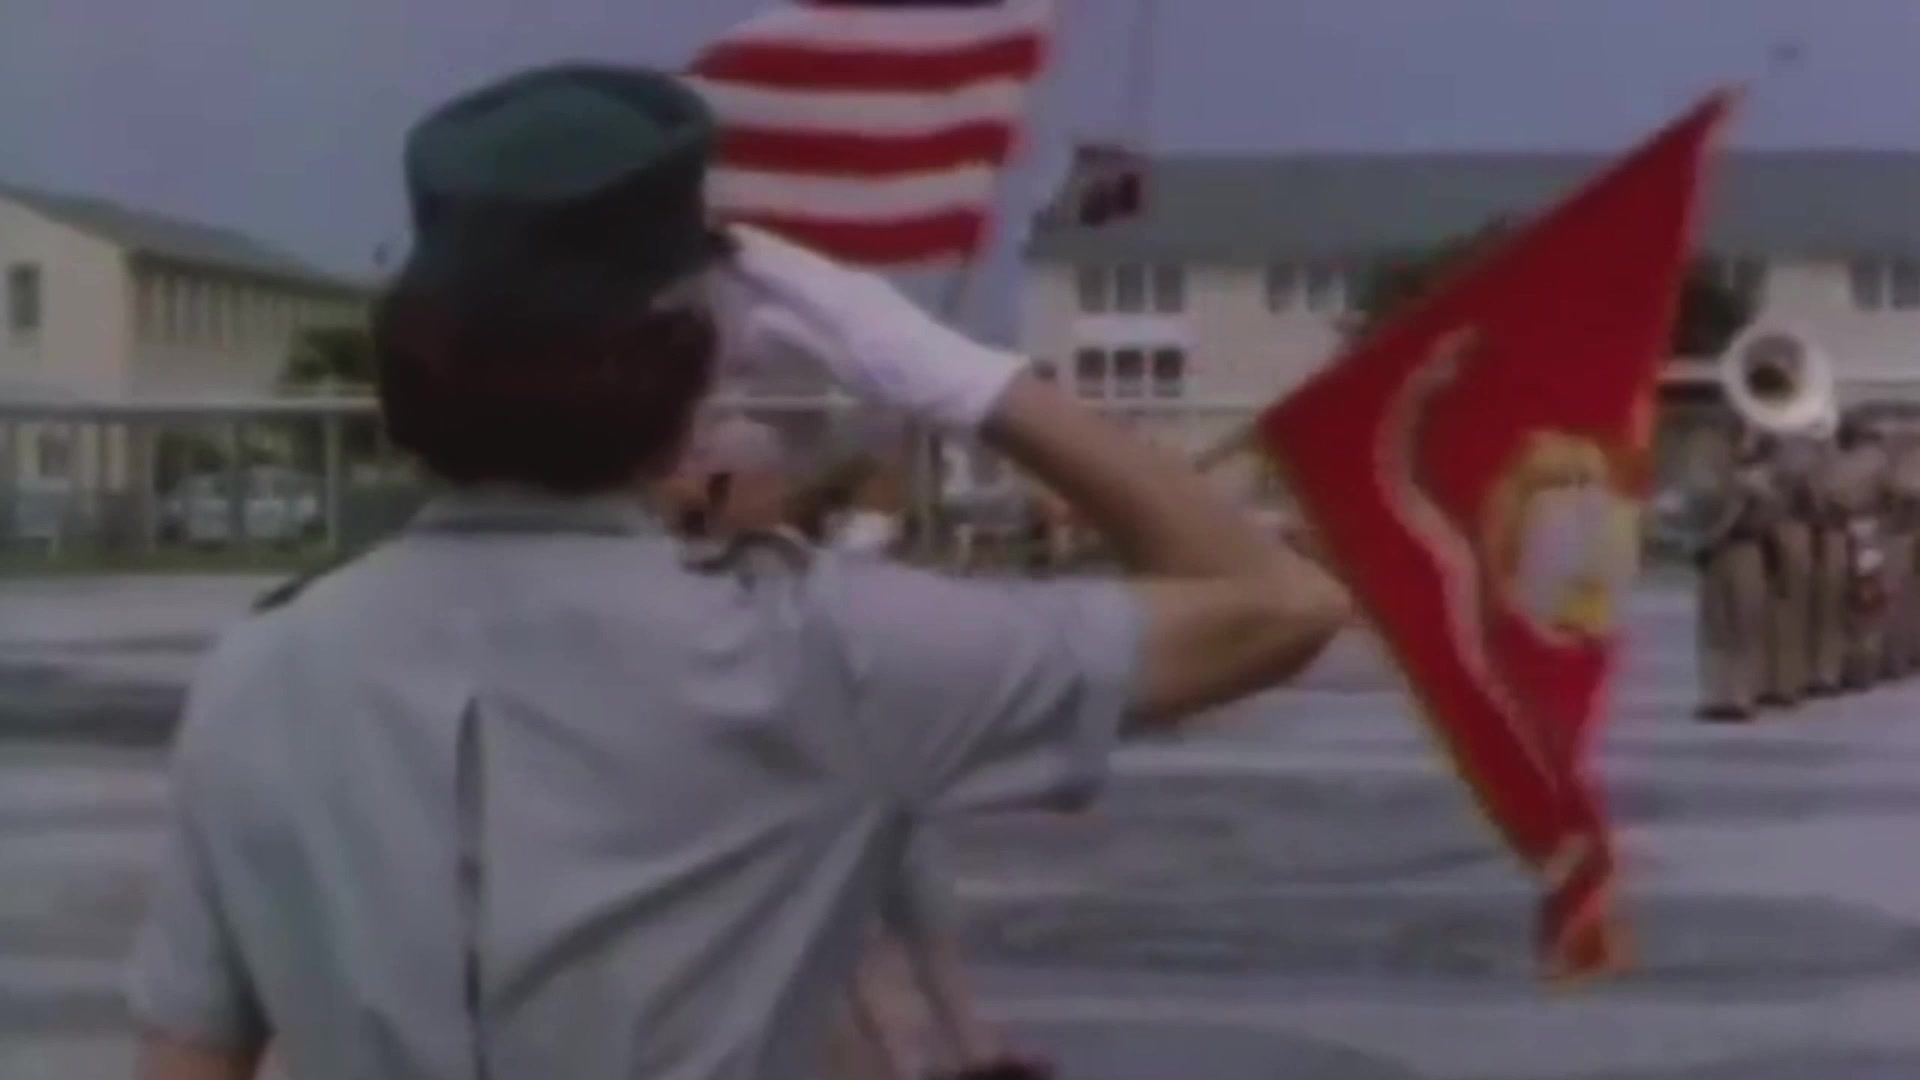 A Marine salutes at others standing in formation with flags.